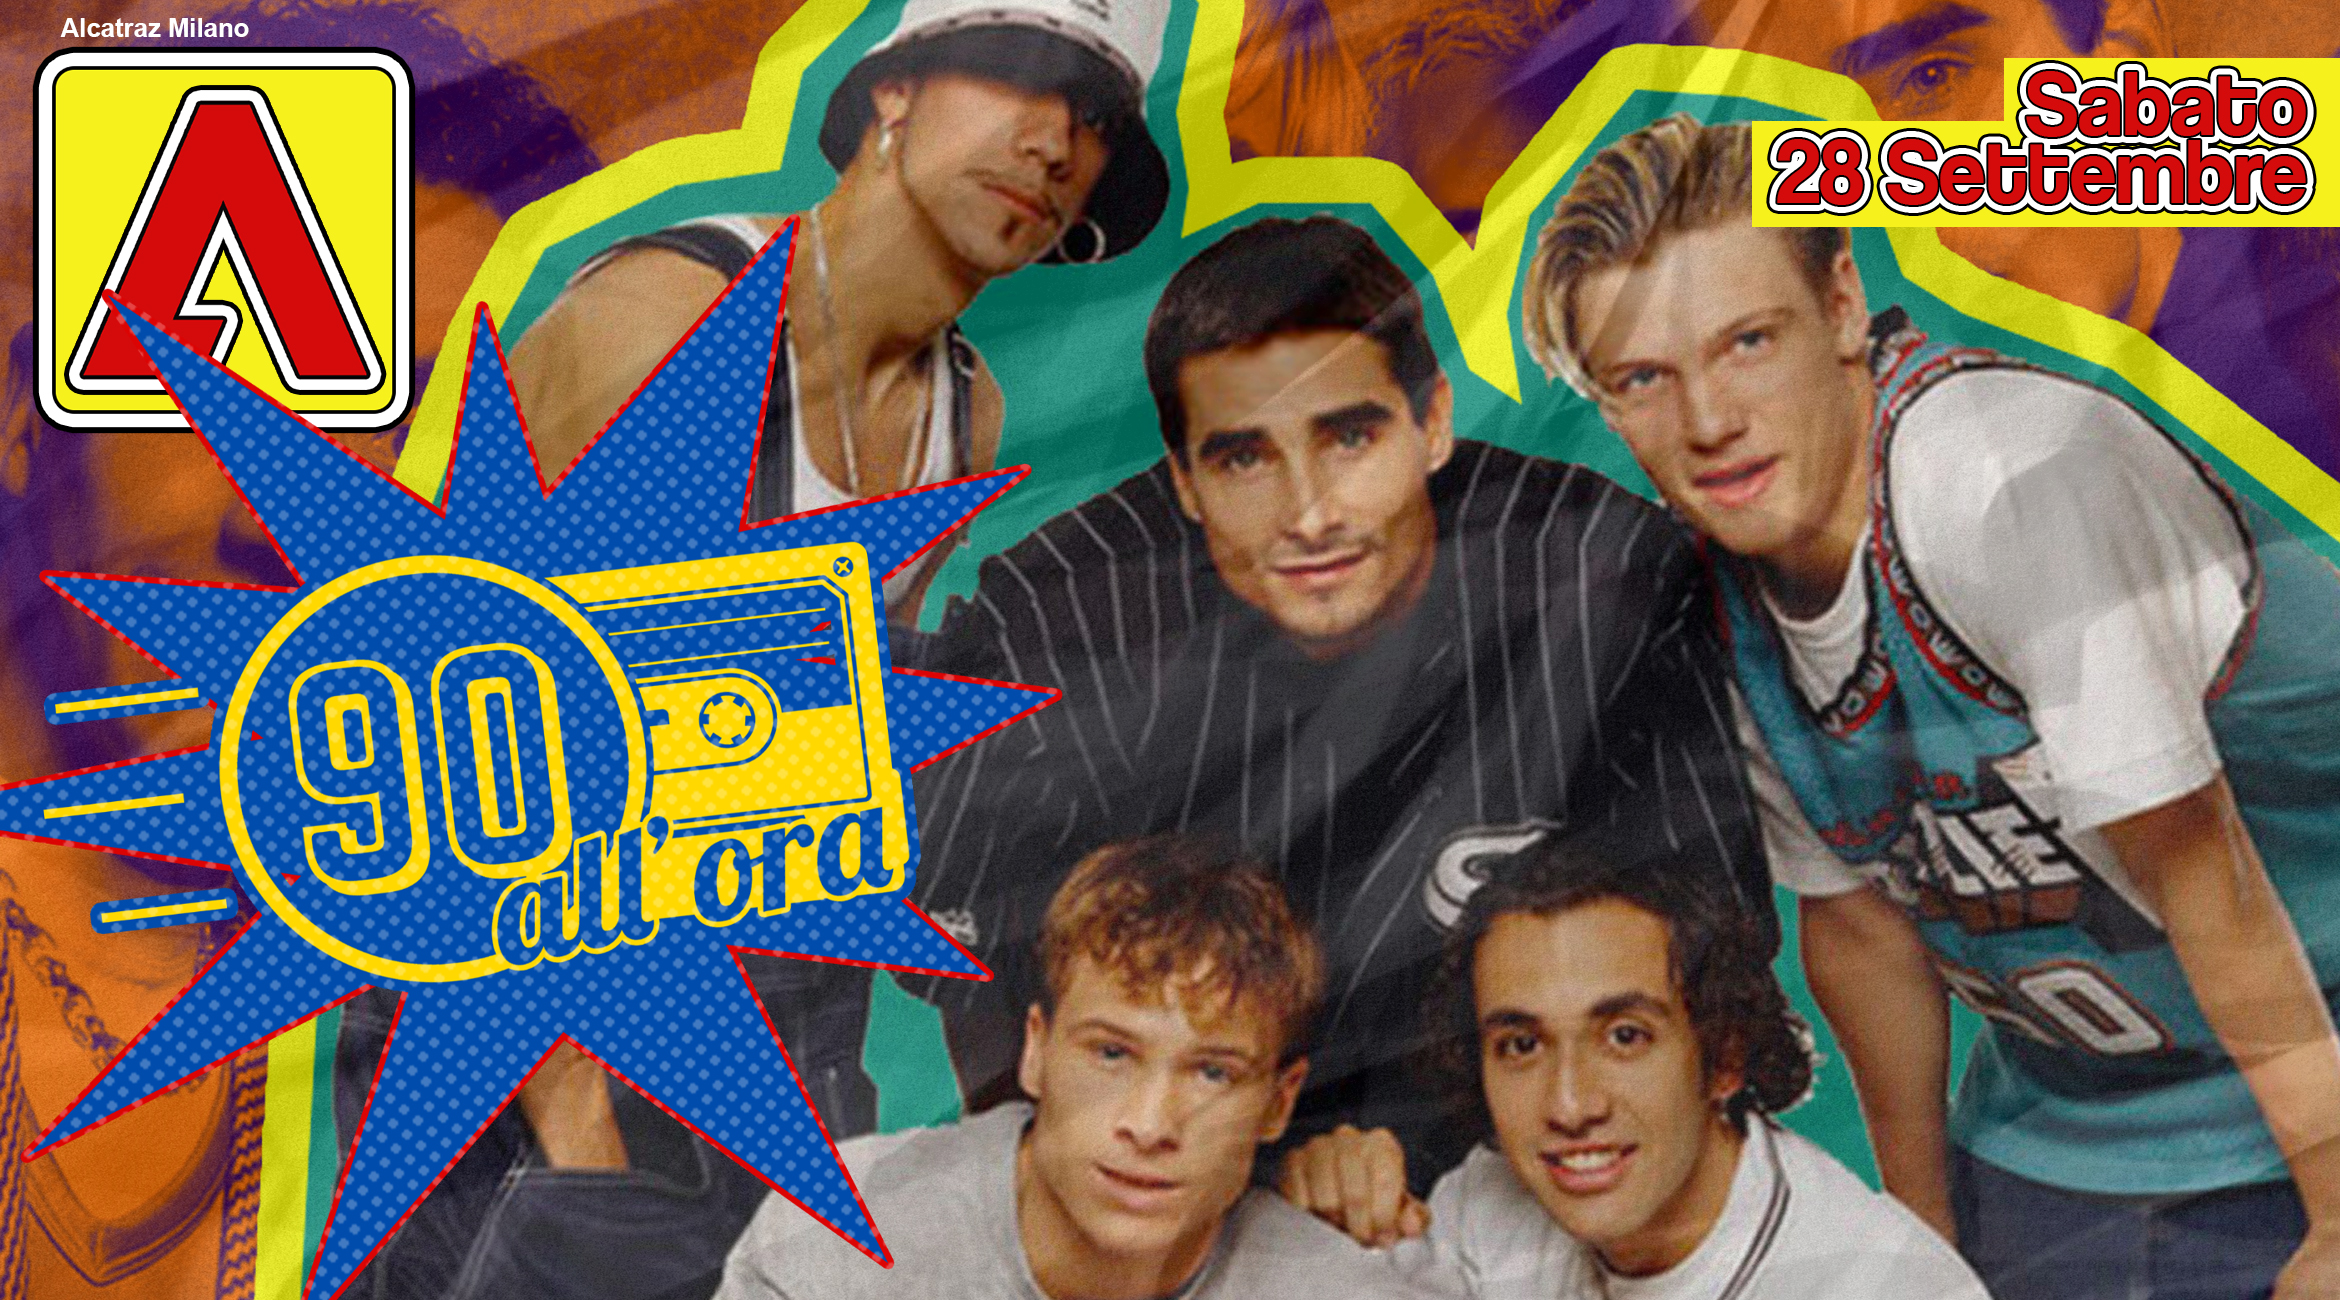 90ora-backstreet_ticket-website